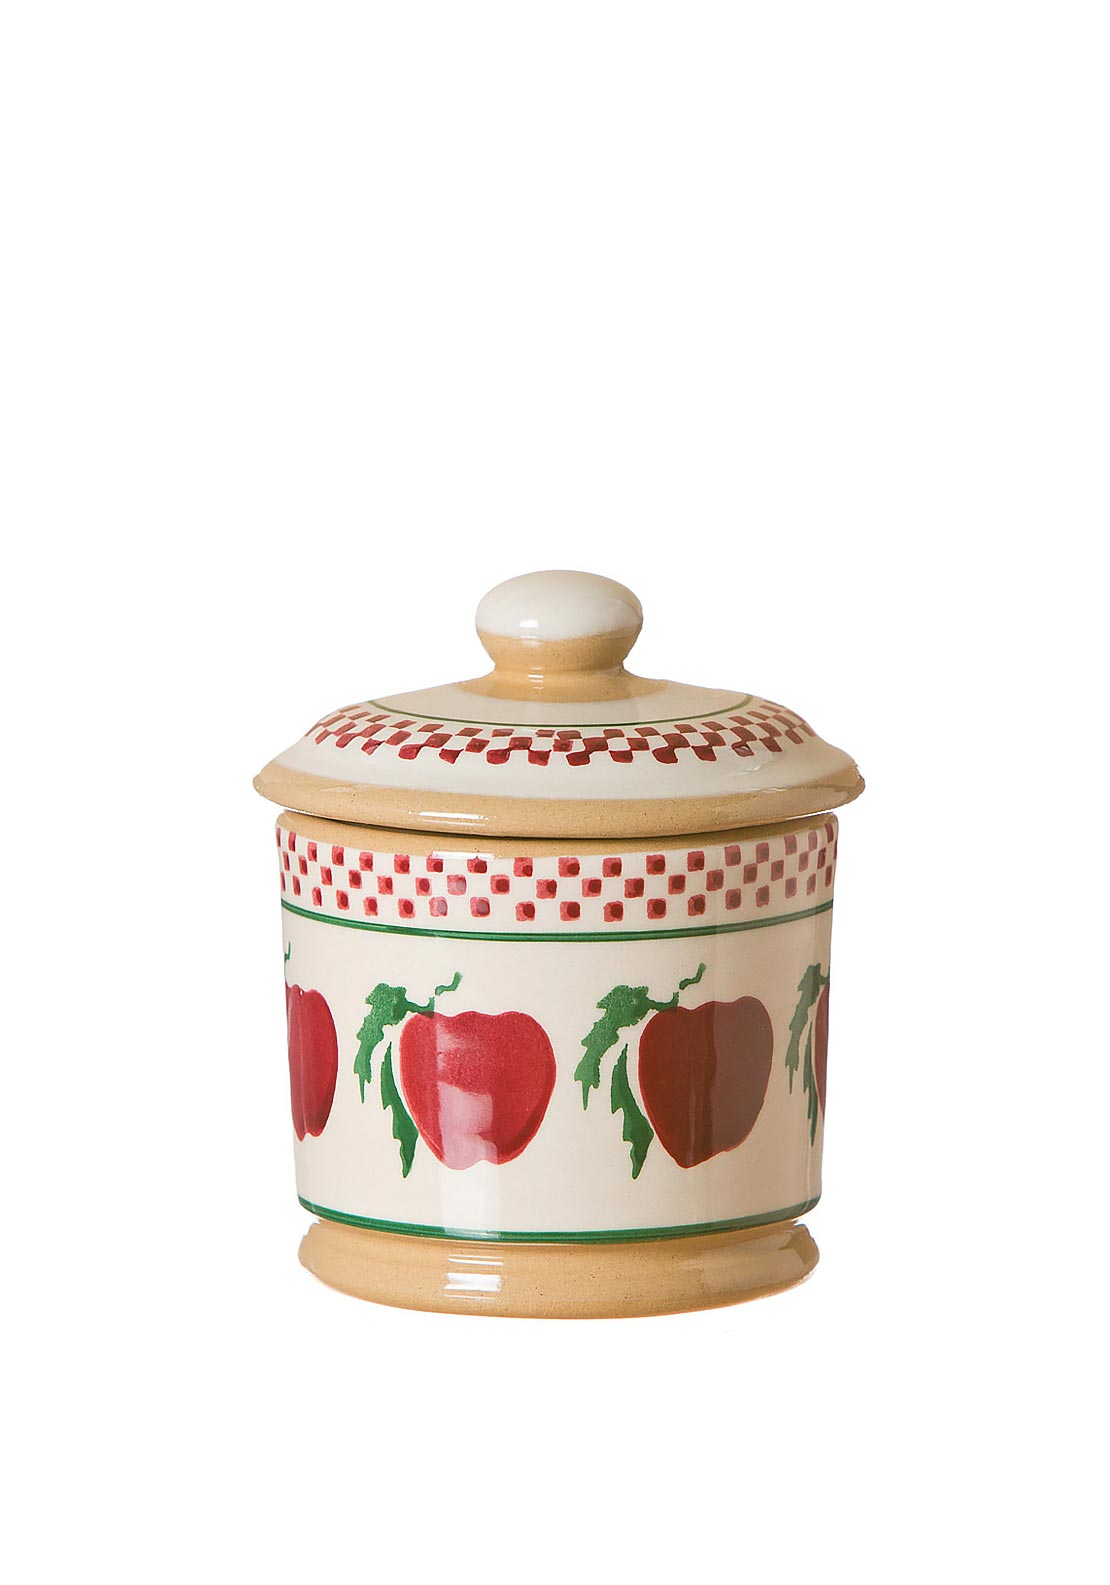 Nicholas Mosse Pottery Apple Lid Sugar Bowl